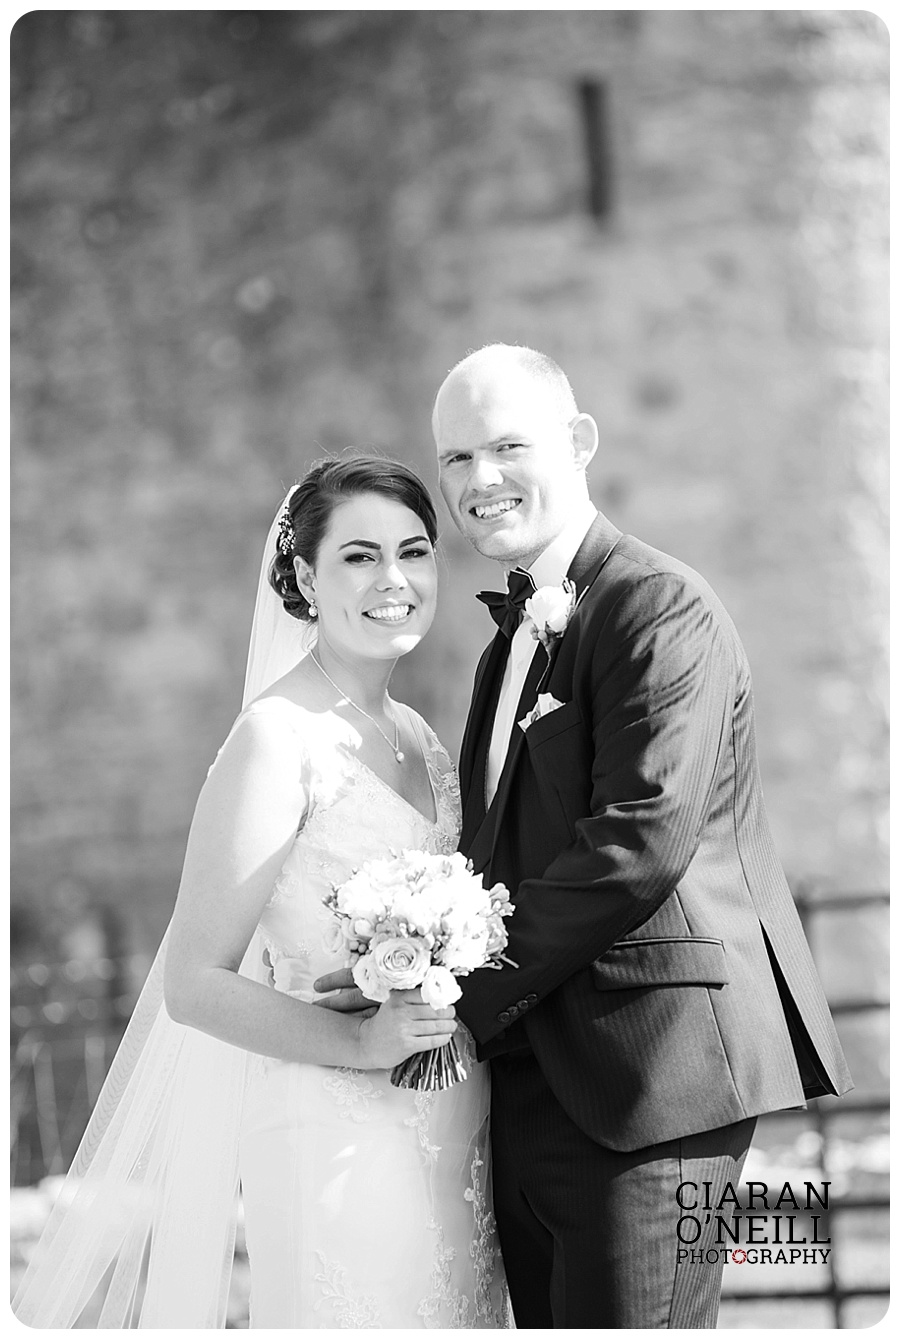 Hannah & Christopher's wedding at Lough Erne Resort & Spa by Ciaran O'Neill Photography 25